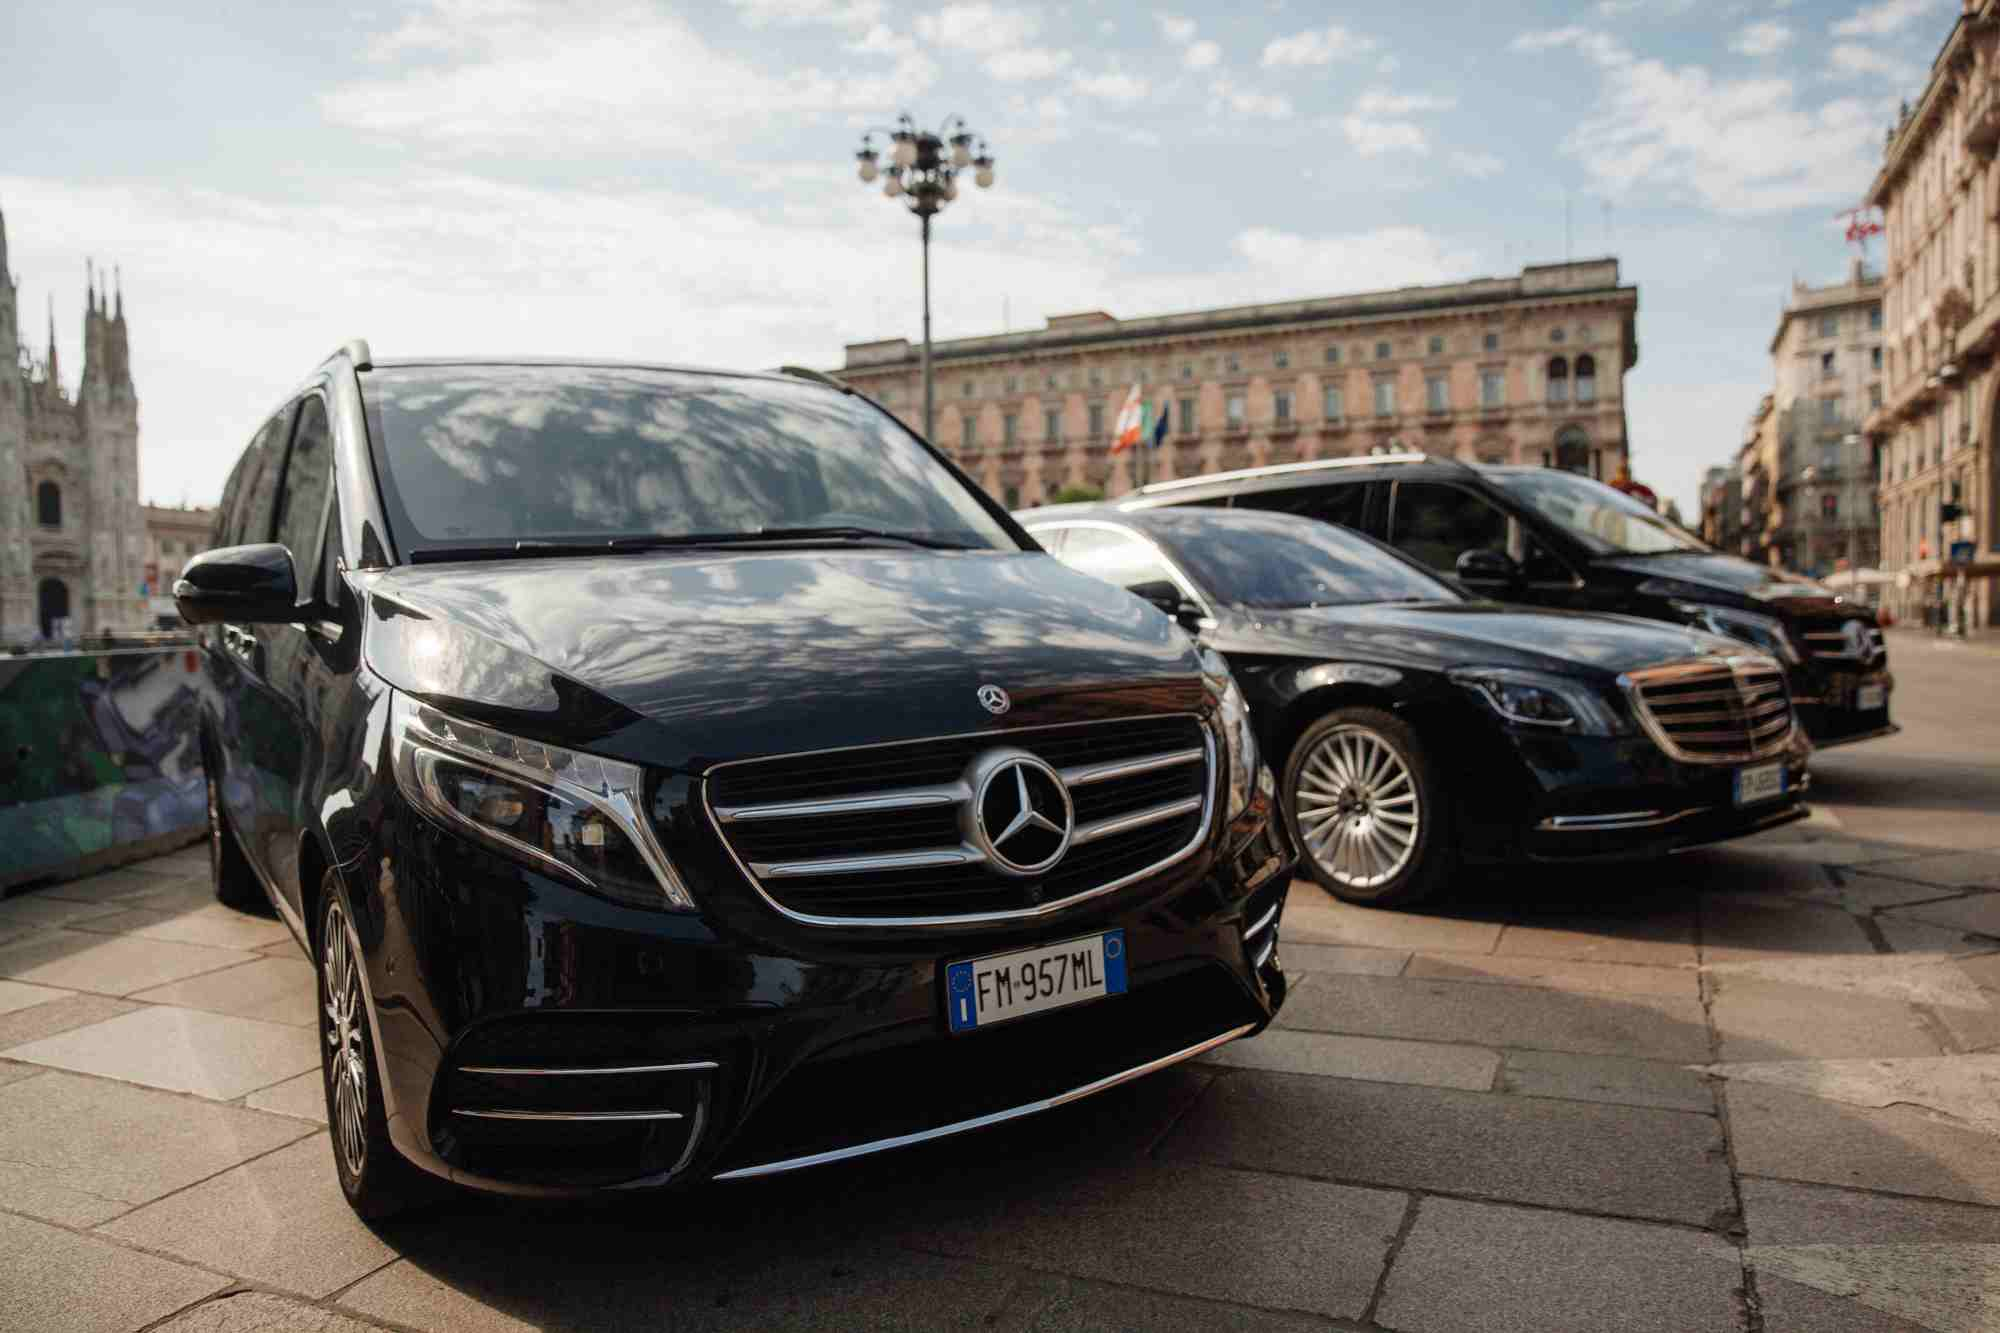 Italy Airport Transfers With Driver | Airport Transfers in Italy | Car Rentals